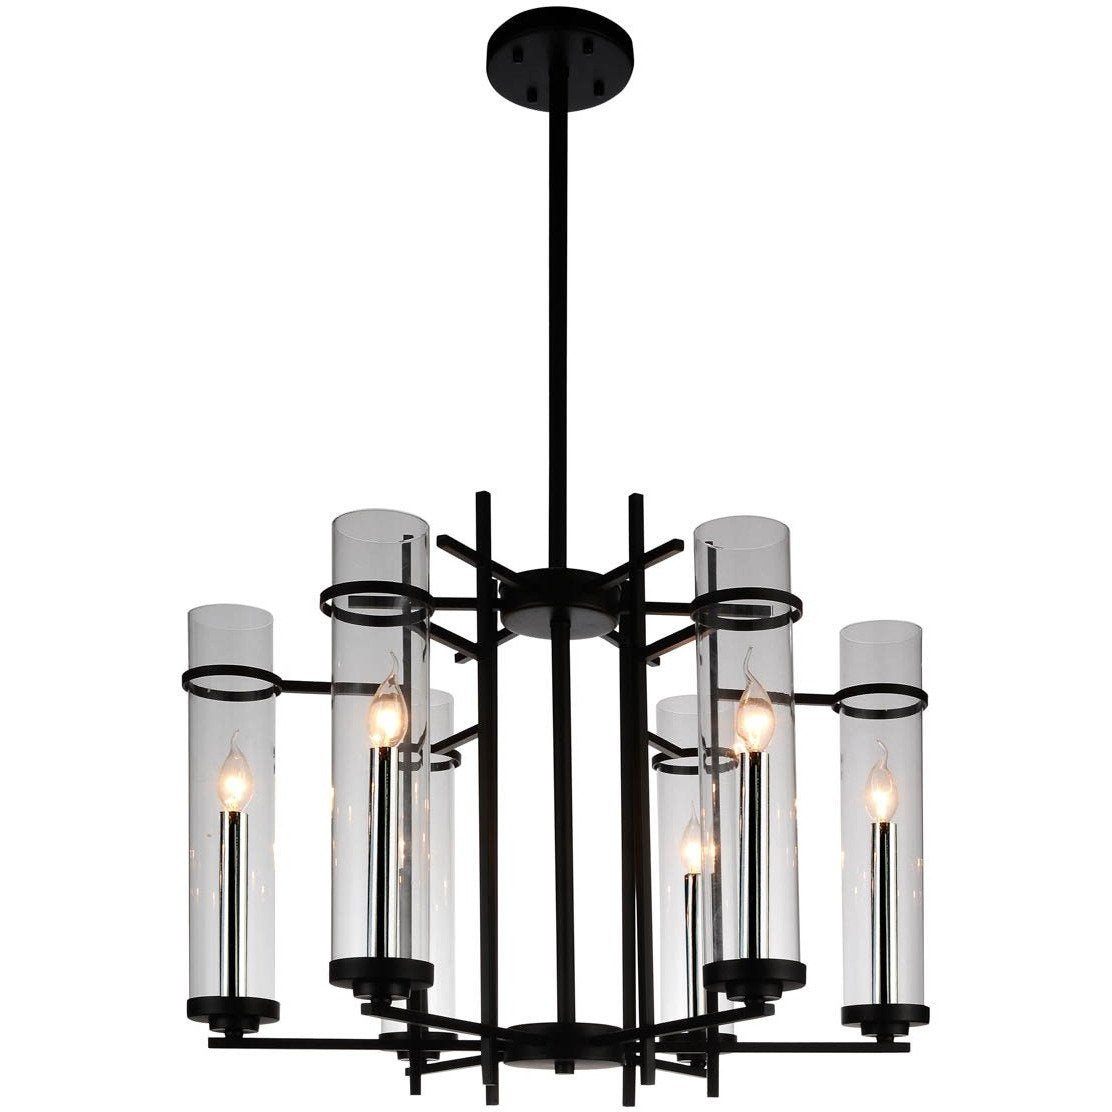 CWI Lighting Chandeliers Black Sierra 6 Light Up Chandelier with Black finish by CWI Lighting 9827P30-6-101